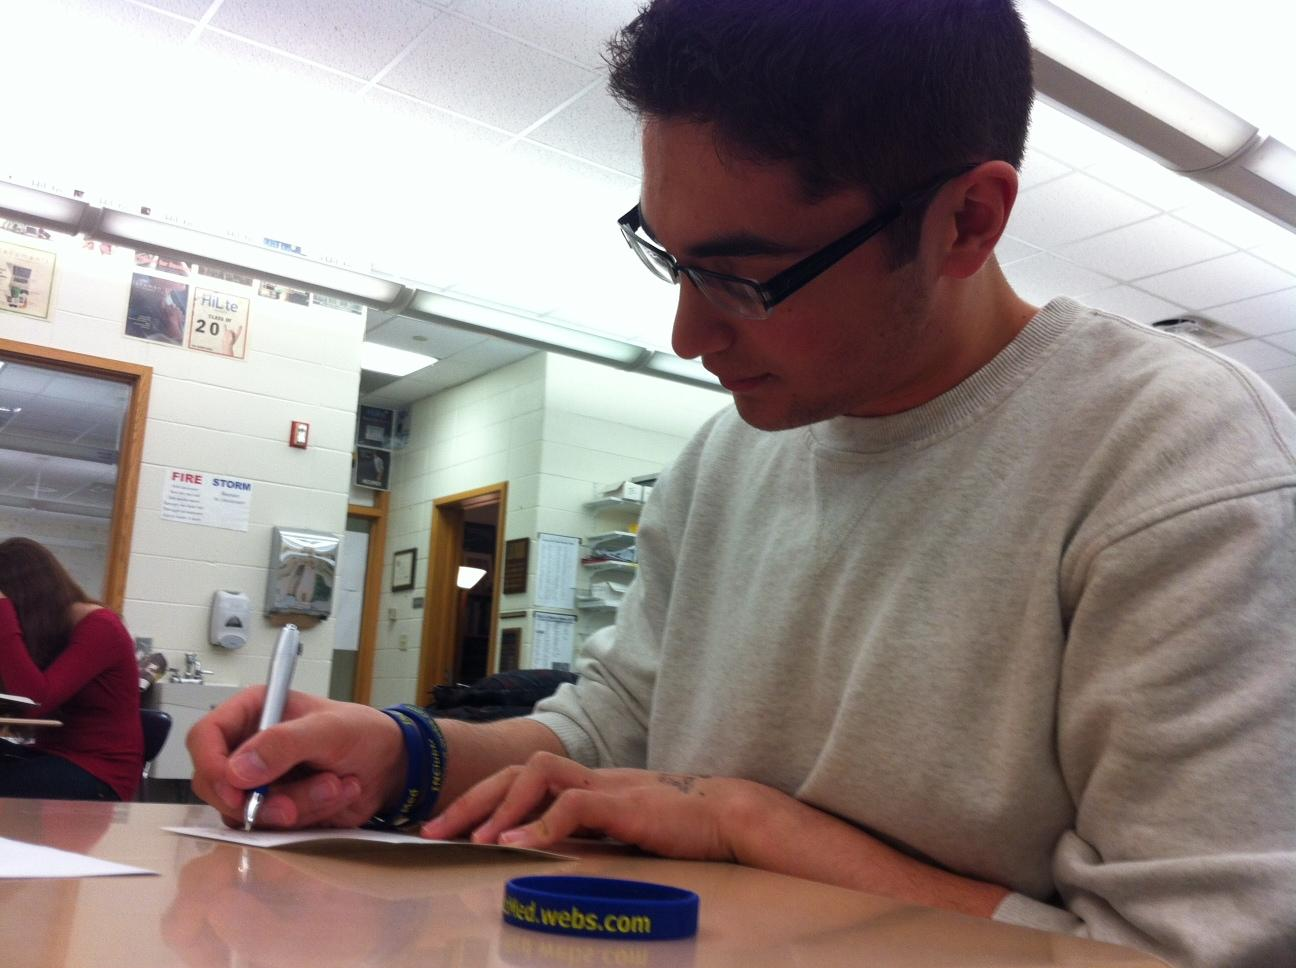 Omeed Malek, Club Med president and senior, writes a note for a teacher. He said he would discuss volunteer opportunities at the next meeting, especially opportunities at St. Vincent Hospital. AARON SHI / PHOTO